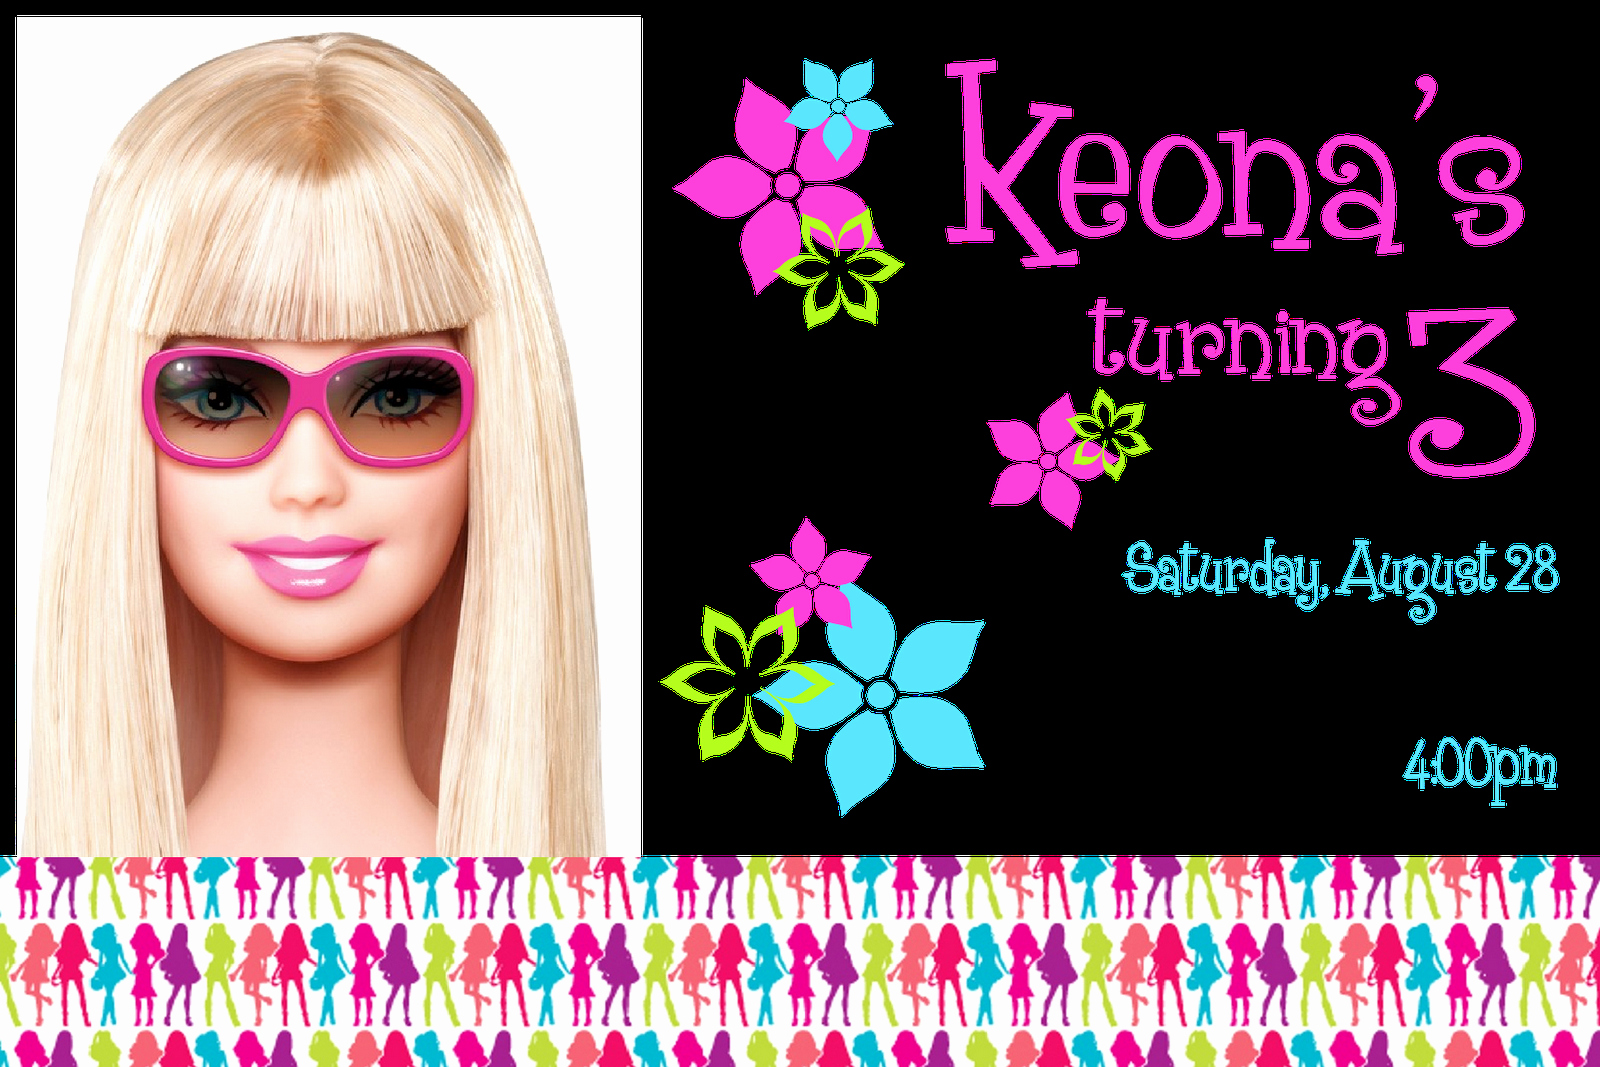 Free Barbie Invitation Templates Best Of Free Printable Barbie Invitations Invitation Templates